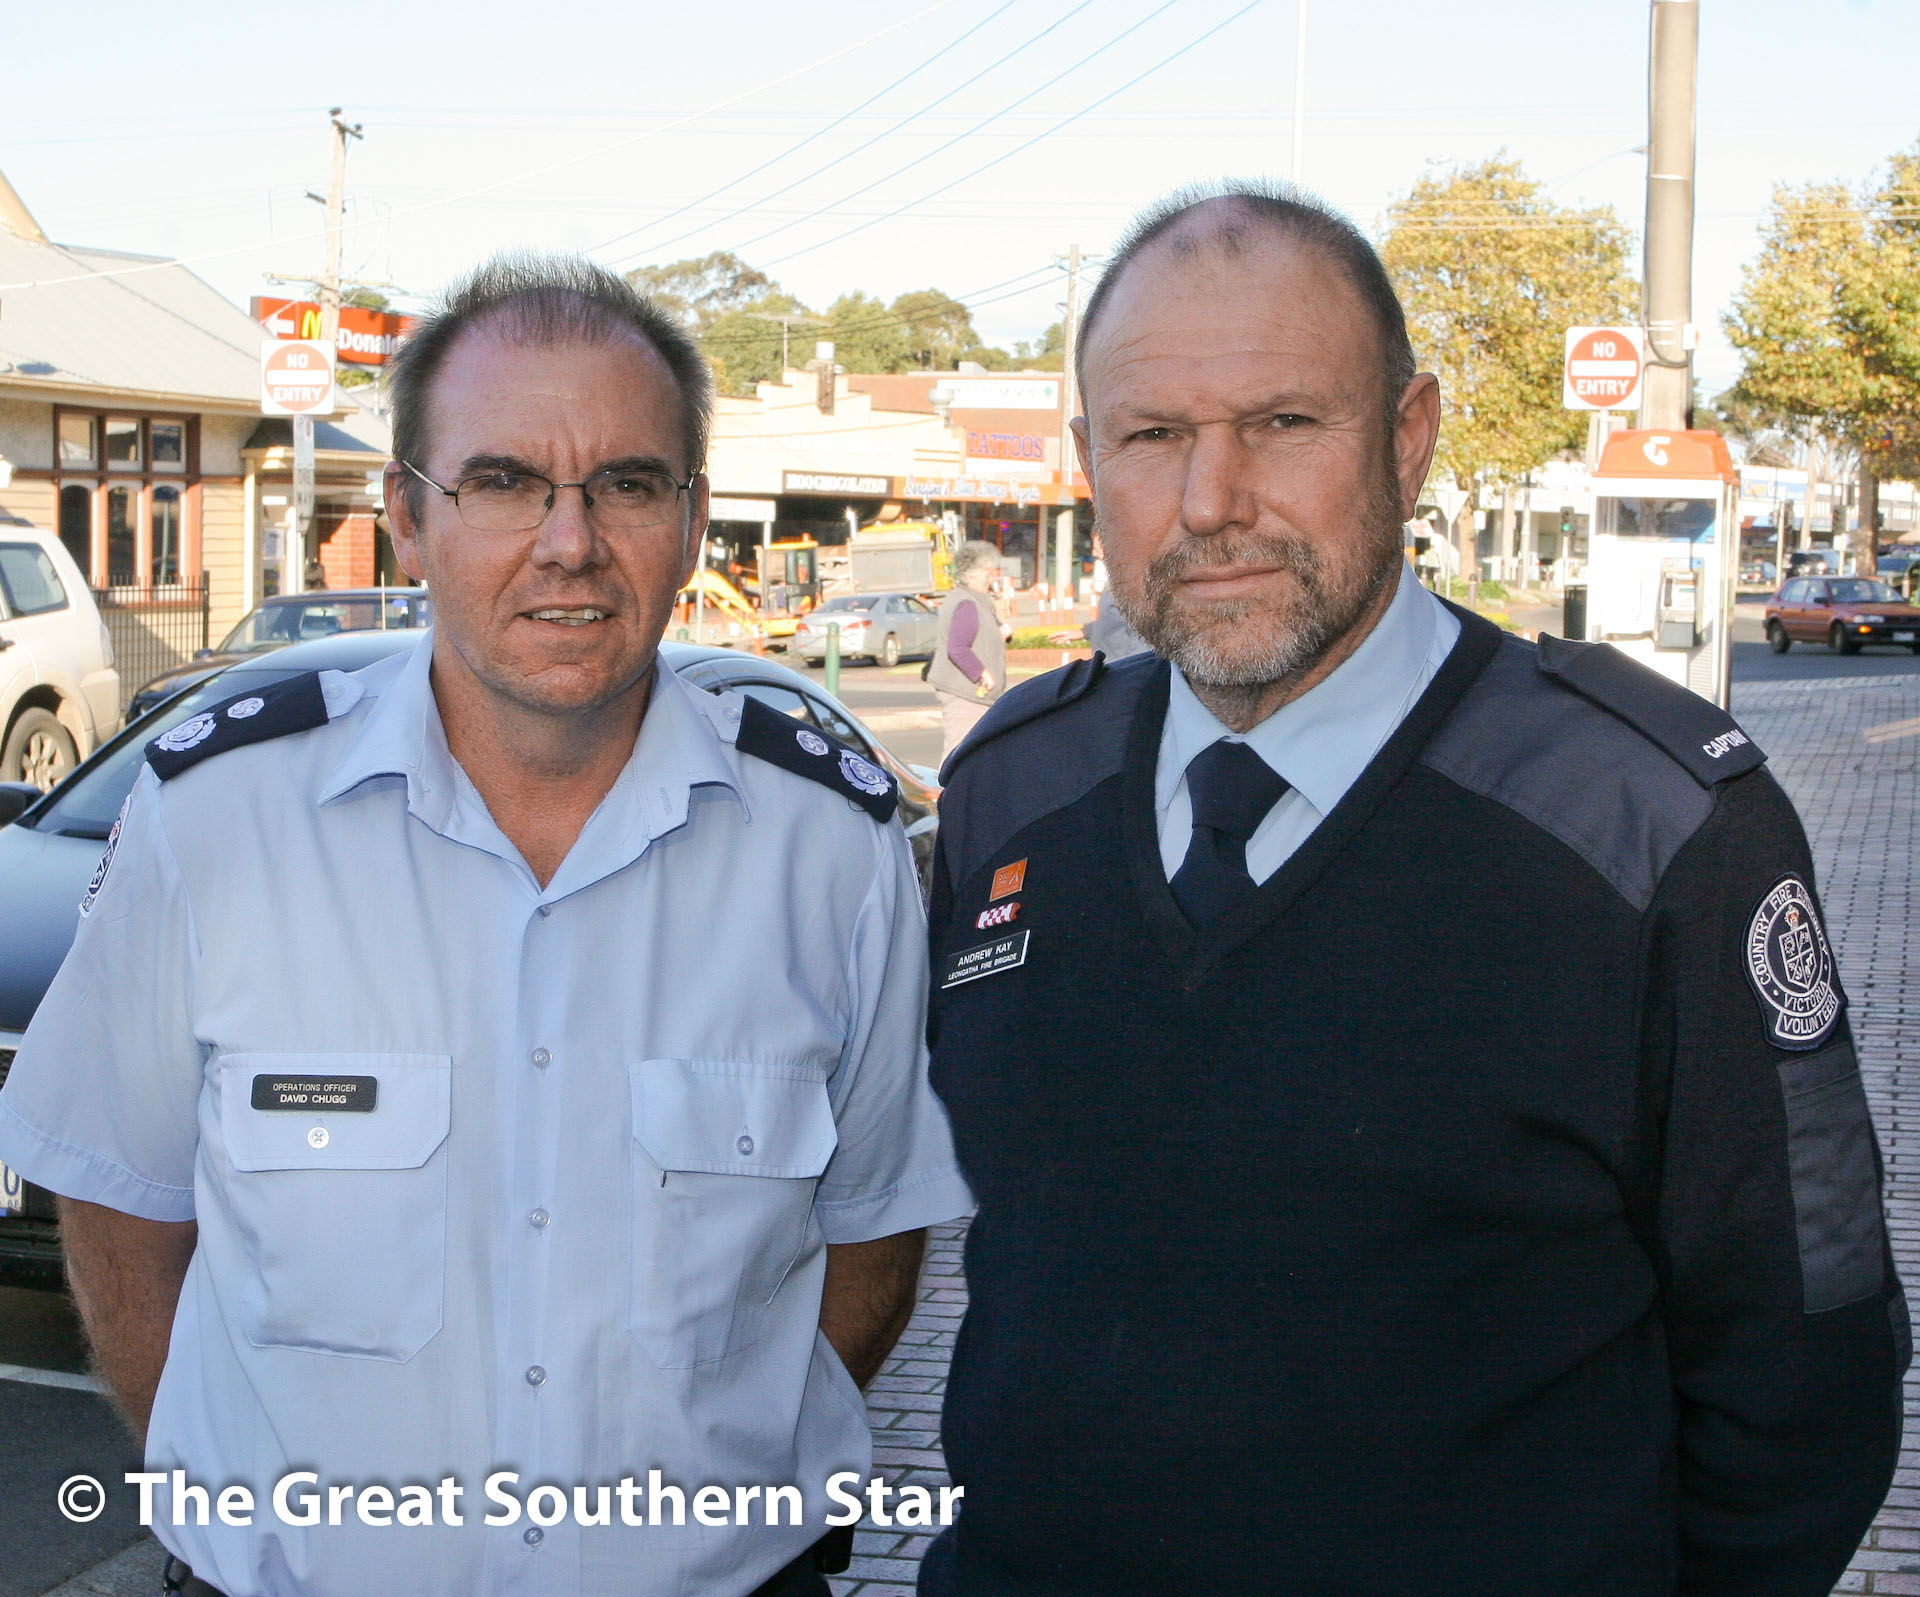 Cfa station rejected the star not happy cfa acting operations manager david chugg and leongatha cfa captain andy kay after yesterdays decision altavistaventures Choice Image